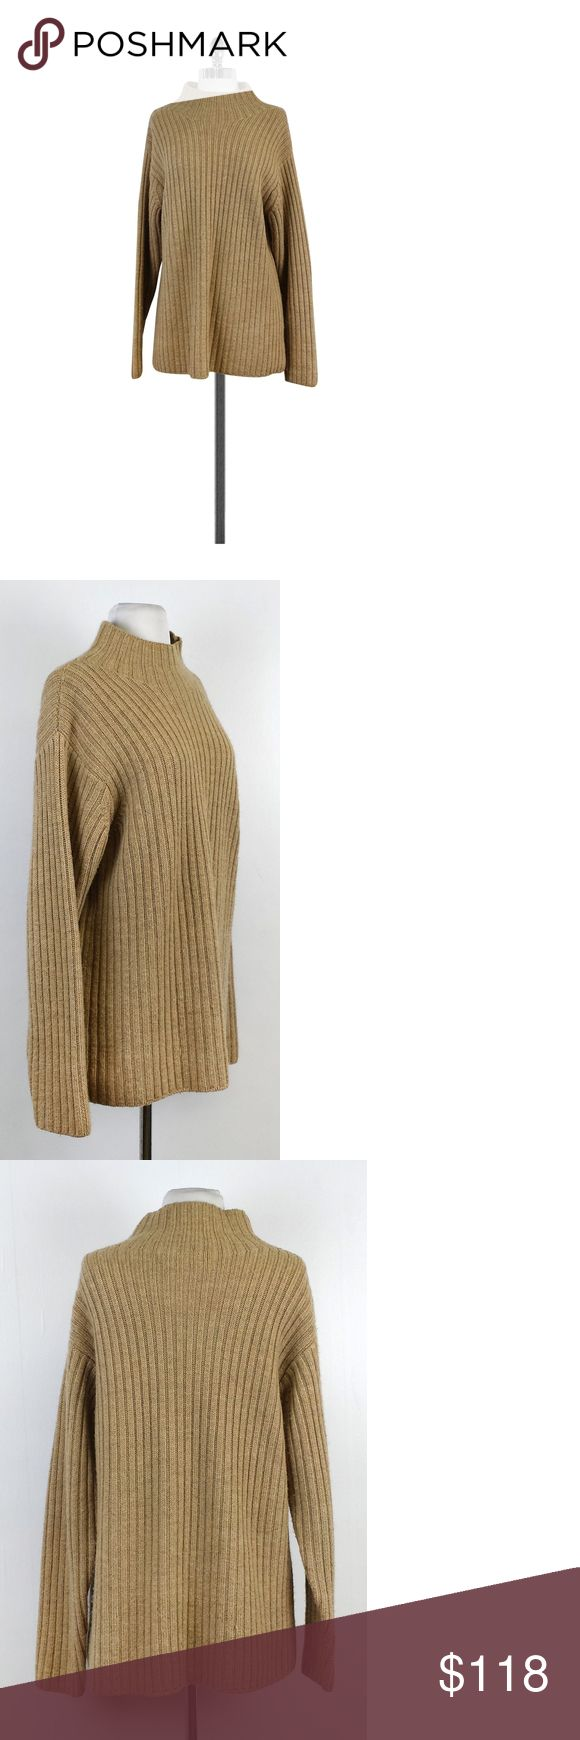 "Burberry- Tan Ribbed Wool Mockneck Sweater Sz L Add this effortless tan ribbed sweater to your favorite jeans and thigh high boots and be instantly casual chic. Made of wool, this classic sweater will keep you cozy and stylish. Size Large 100% wool Made in USA Pull over Mock neck Long sleeves Ribbed Loose fit Fabric pilling Shoulder to hem 27"" Known for their signature tartan pattern, Burberry is a British luxury brand that offers clothing, accessories and fragrances. This brand can be…"